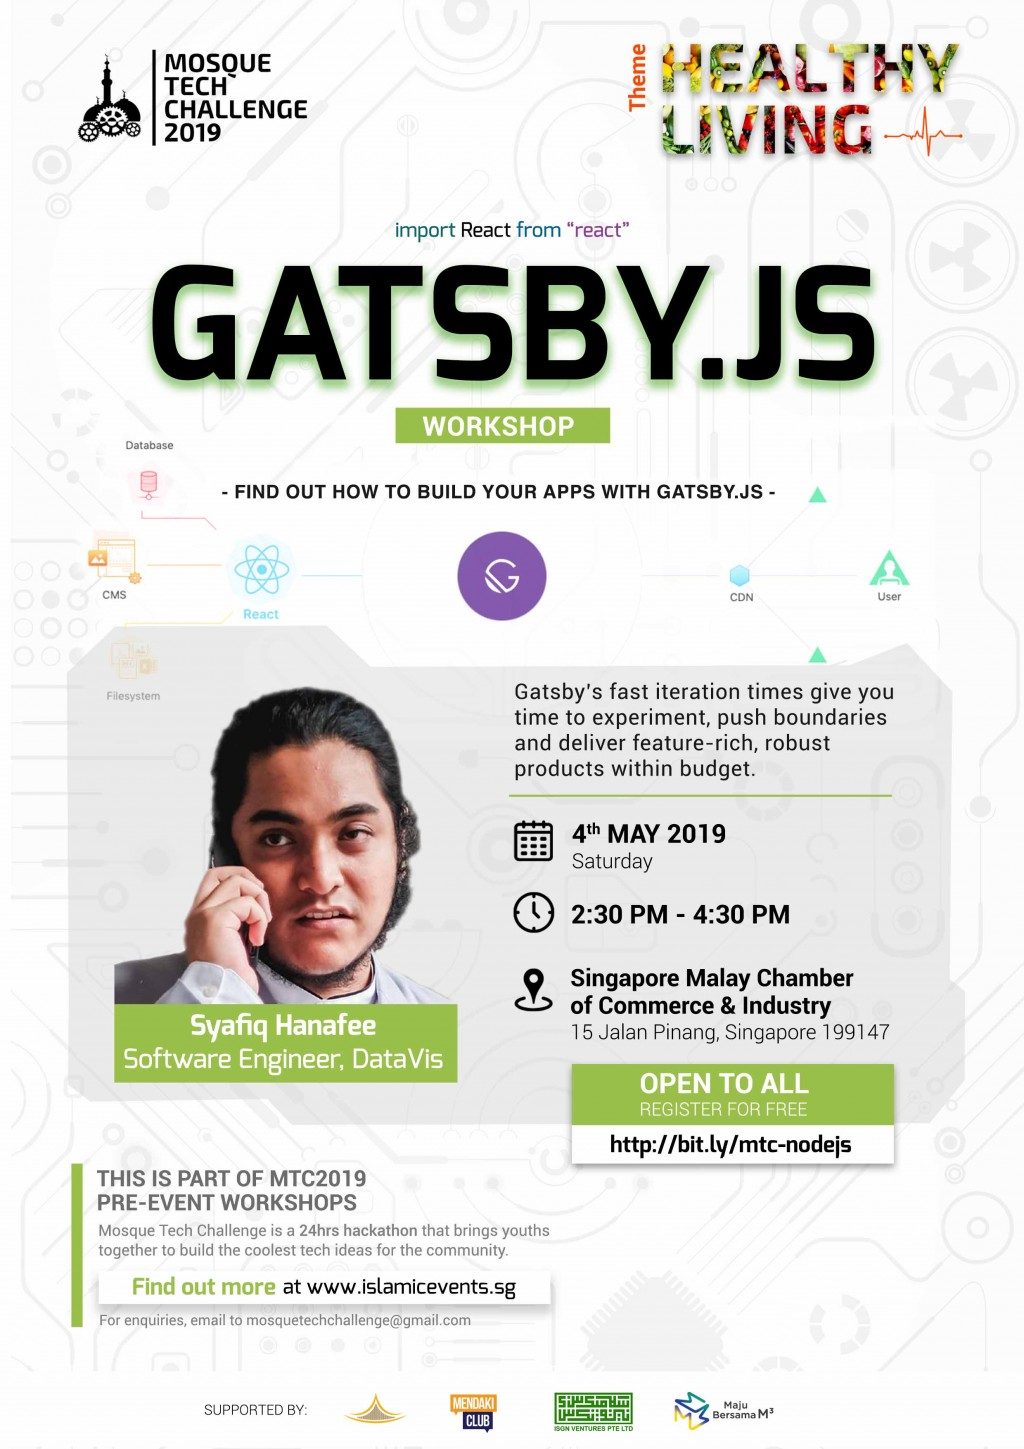 Gatsby.js and Serverless functions